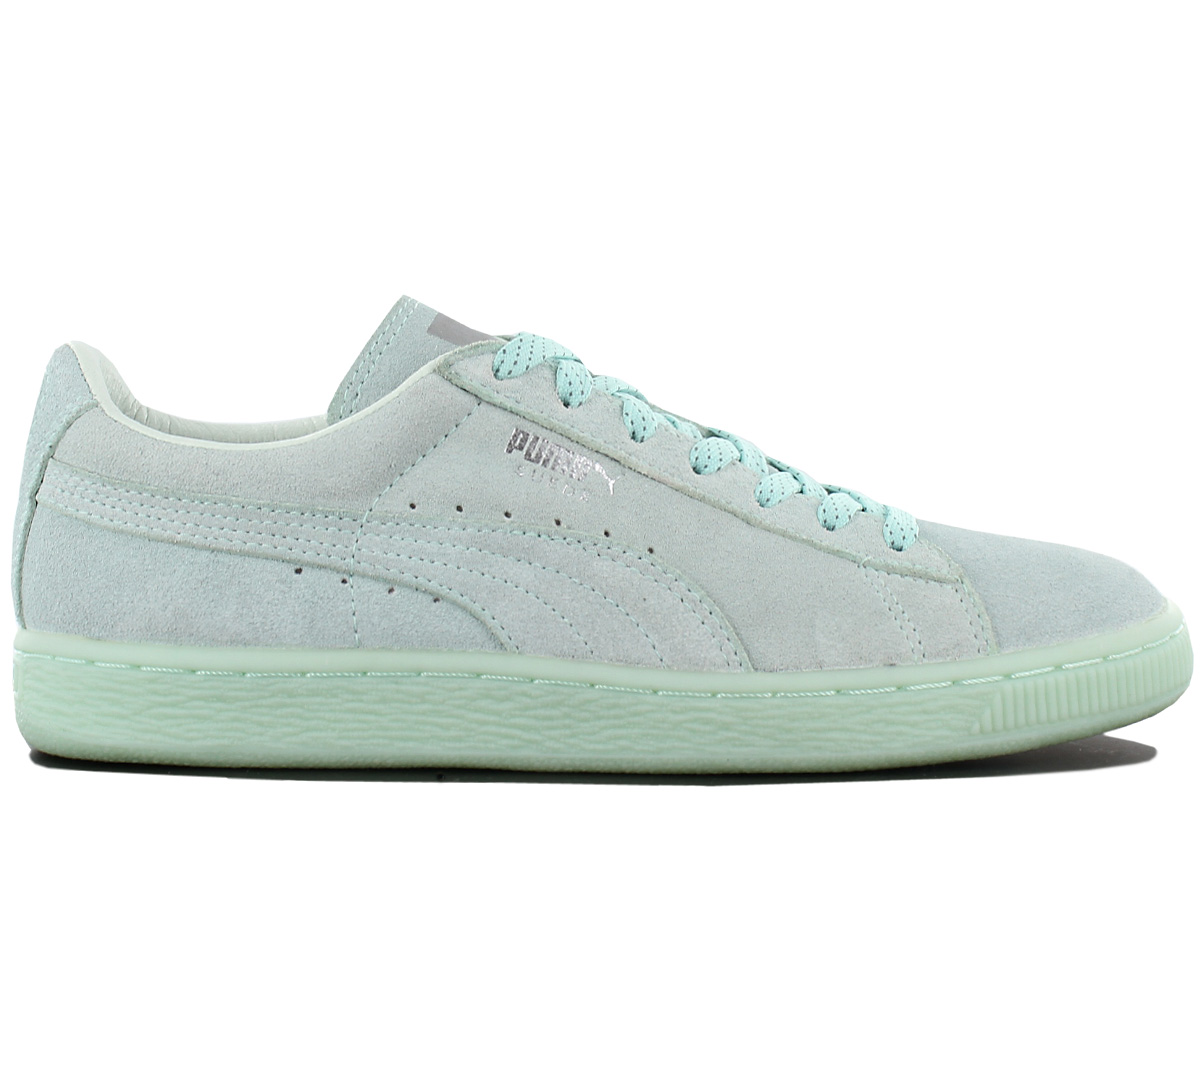 sports shoes a7710 3b055 Details about Puma Suede Classic Mono Ref Iced Ladies Sneaker Shoes Leather  Trainers 362101 02